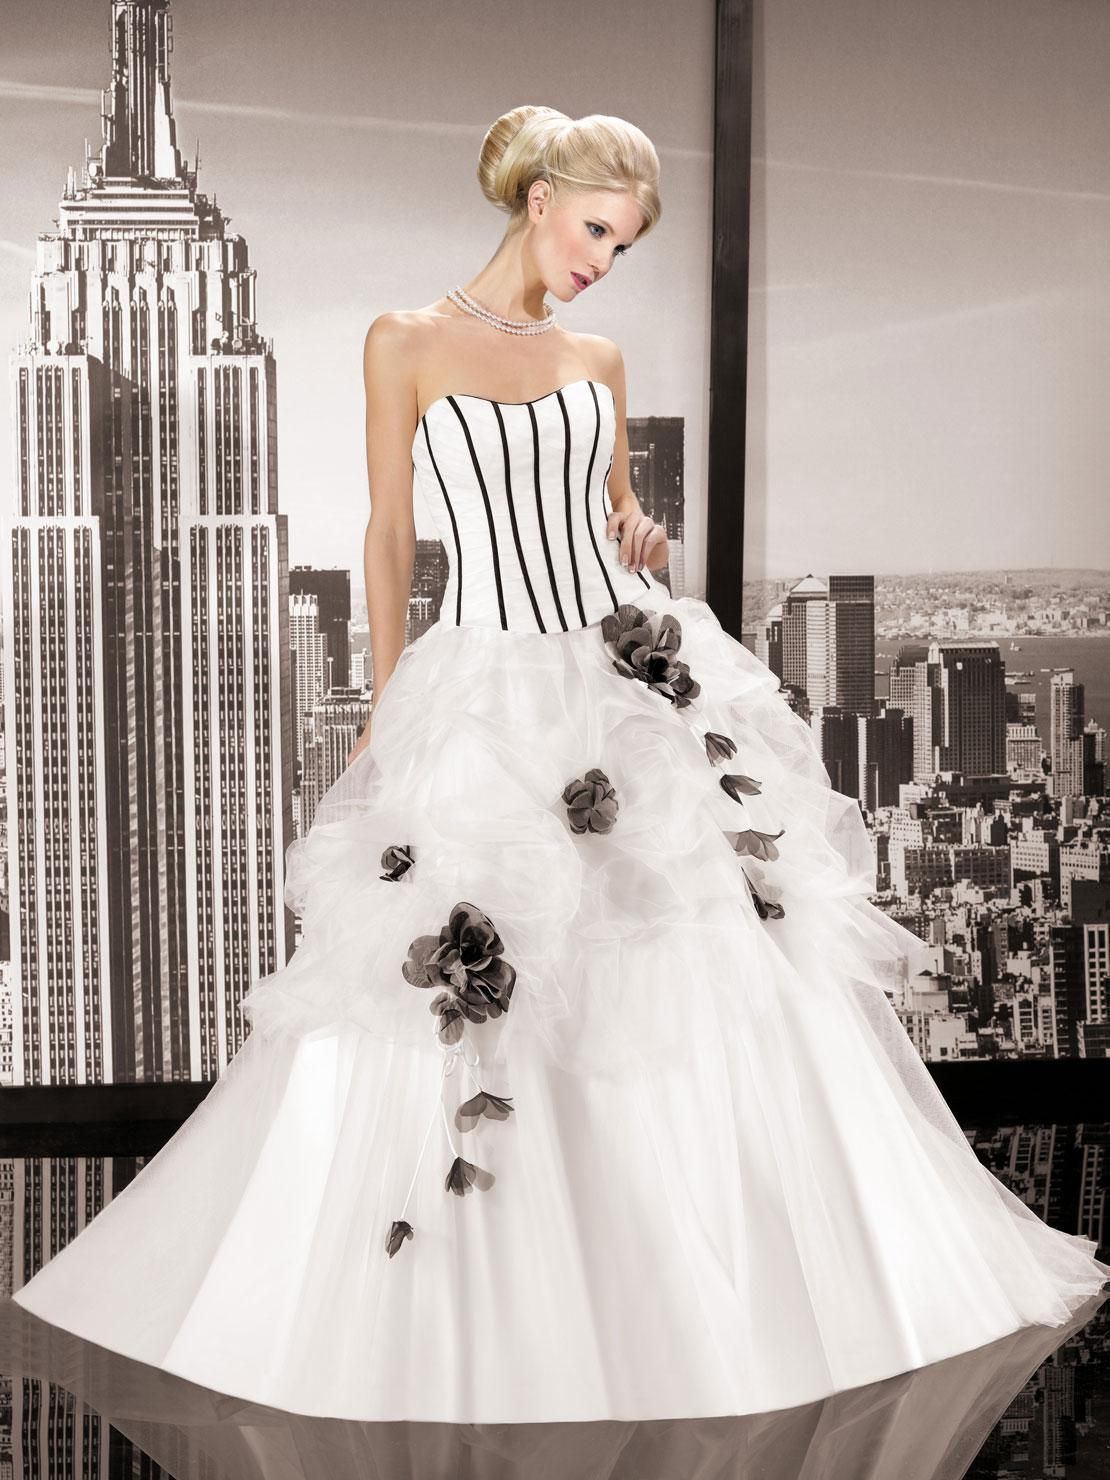 Mix Color Style White And Black Ball Gown Wedding Dress